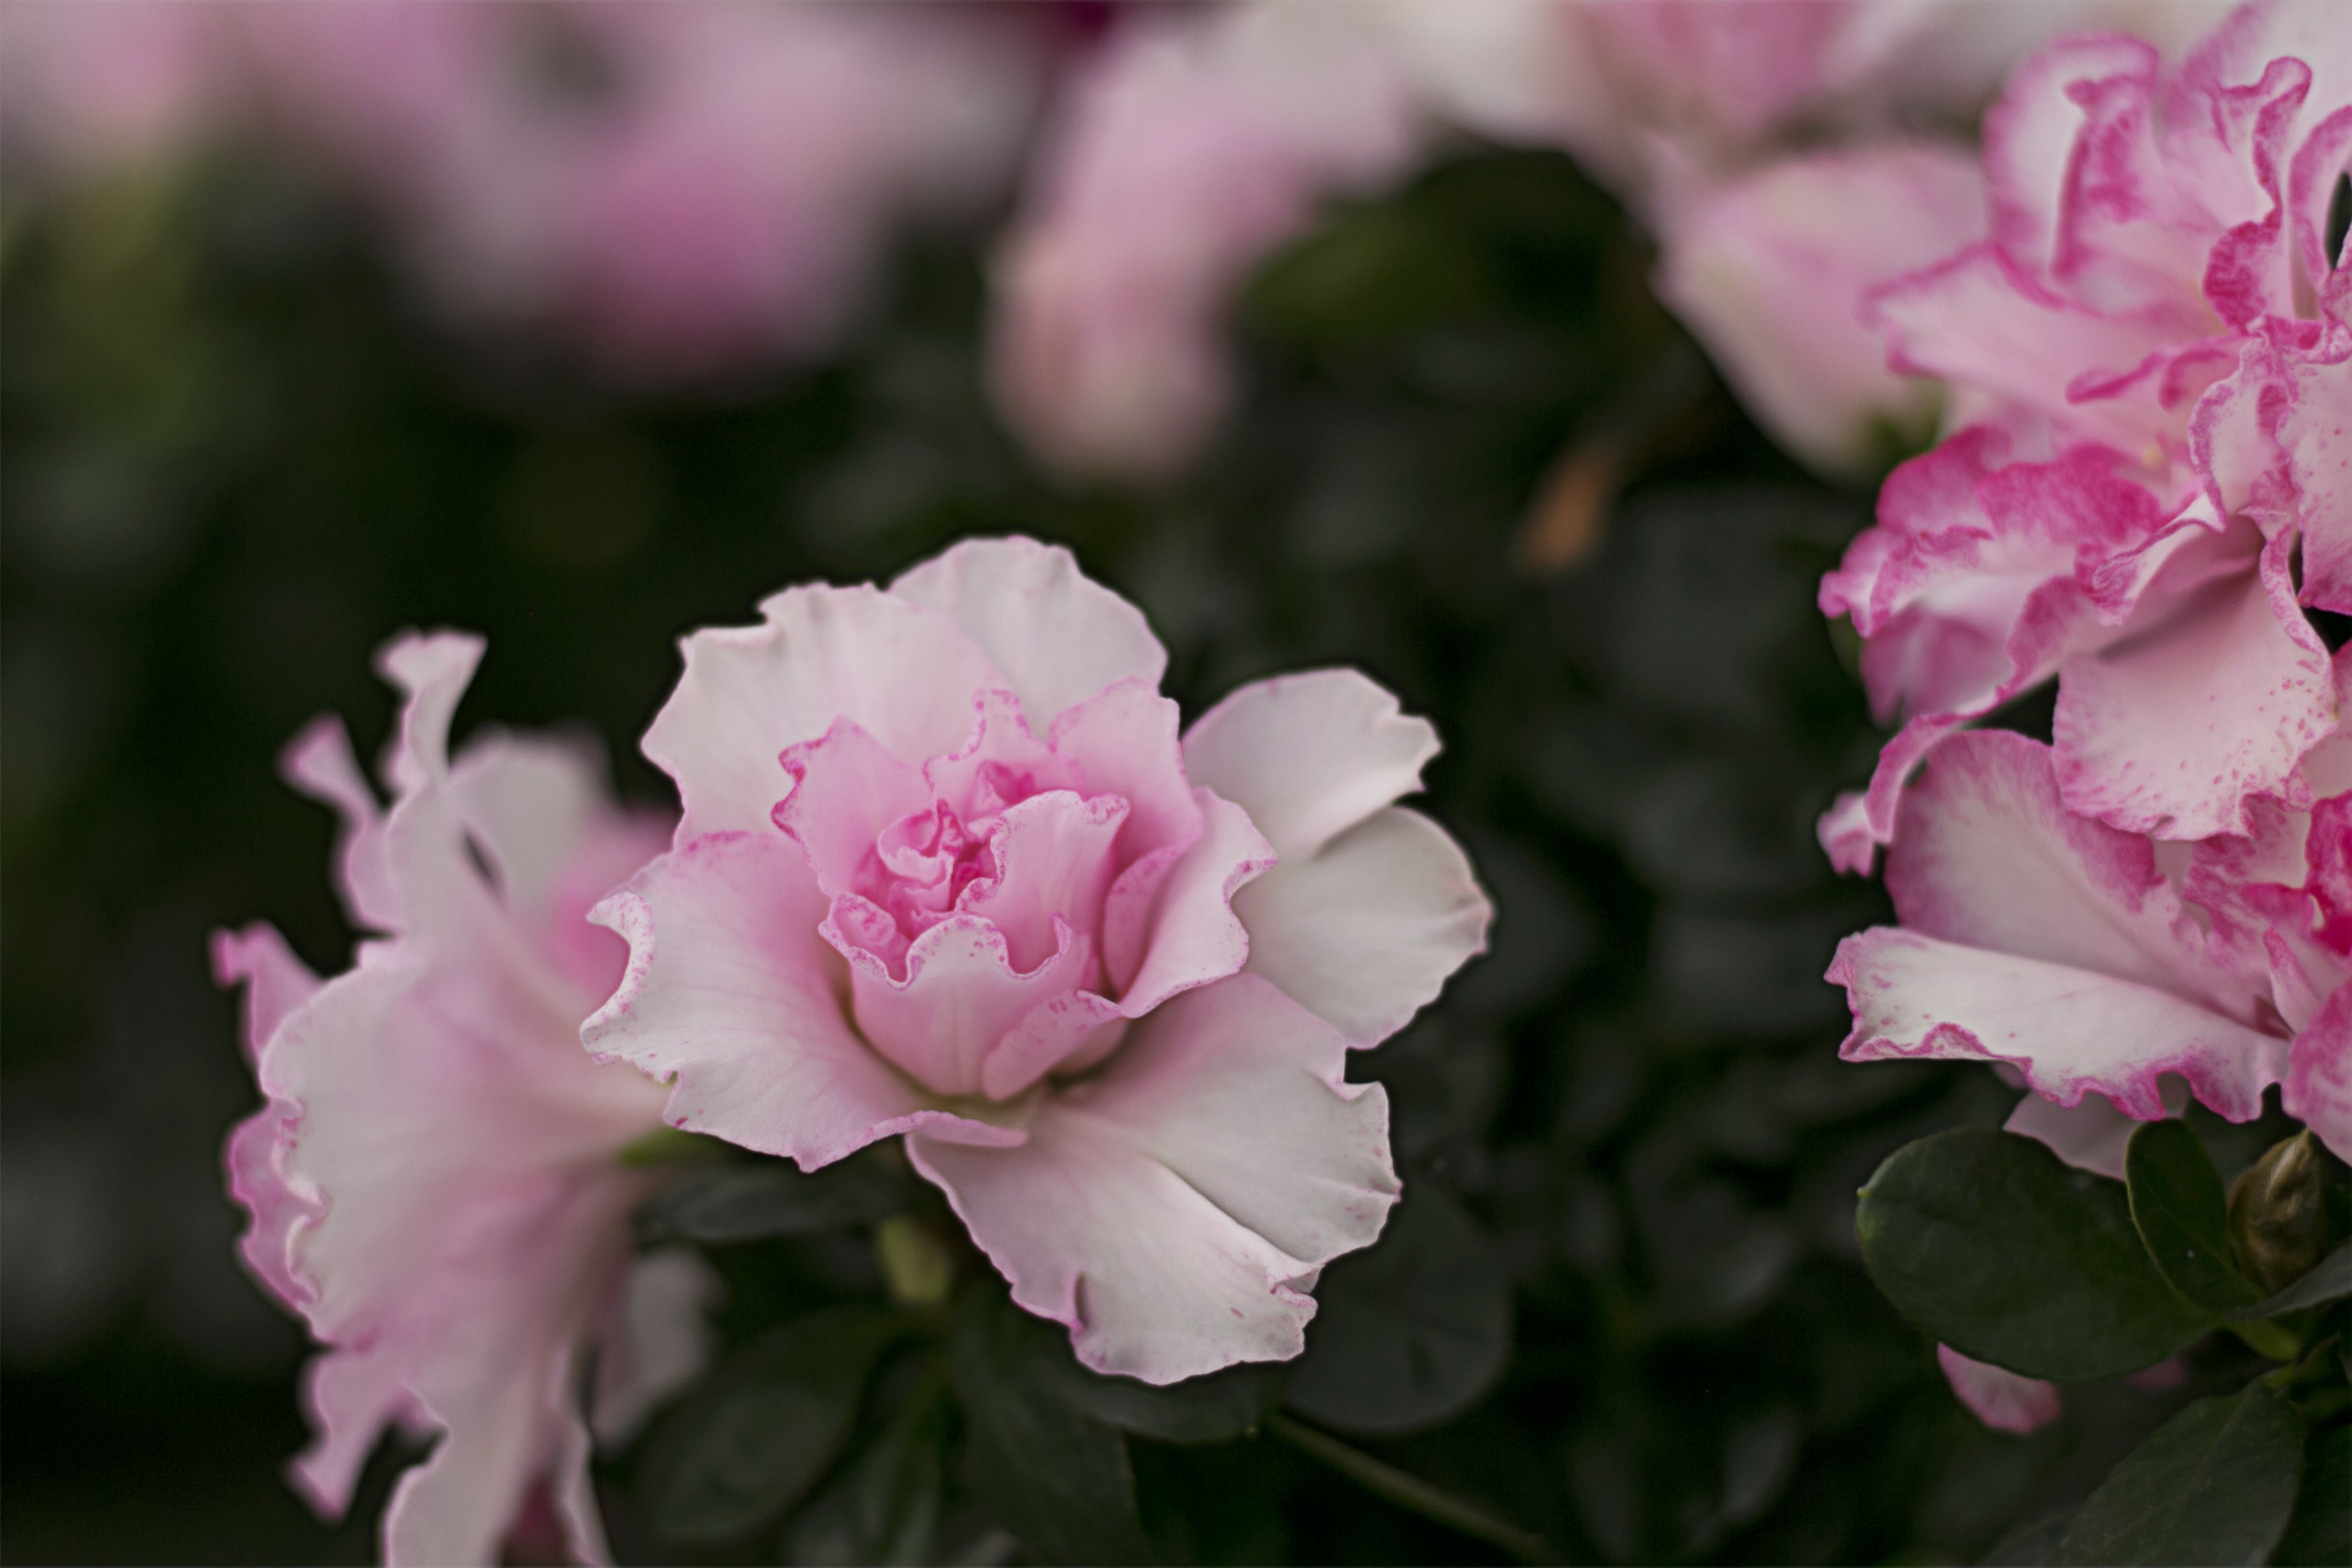 Close-Up Photography of White and  Pink Flower